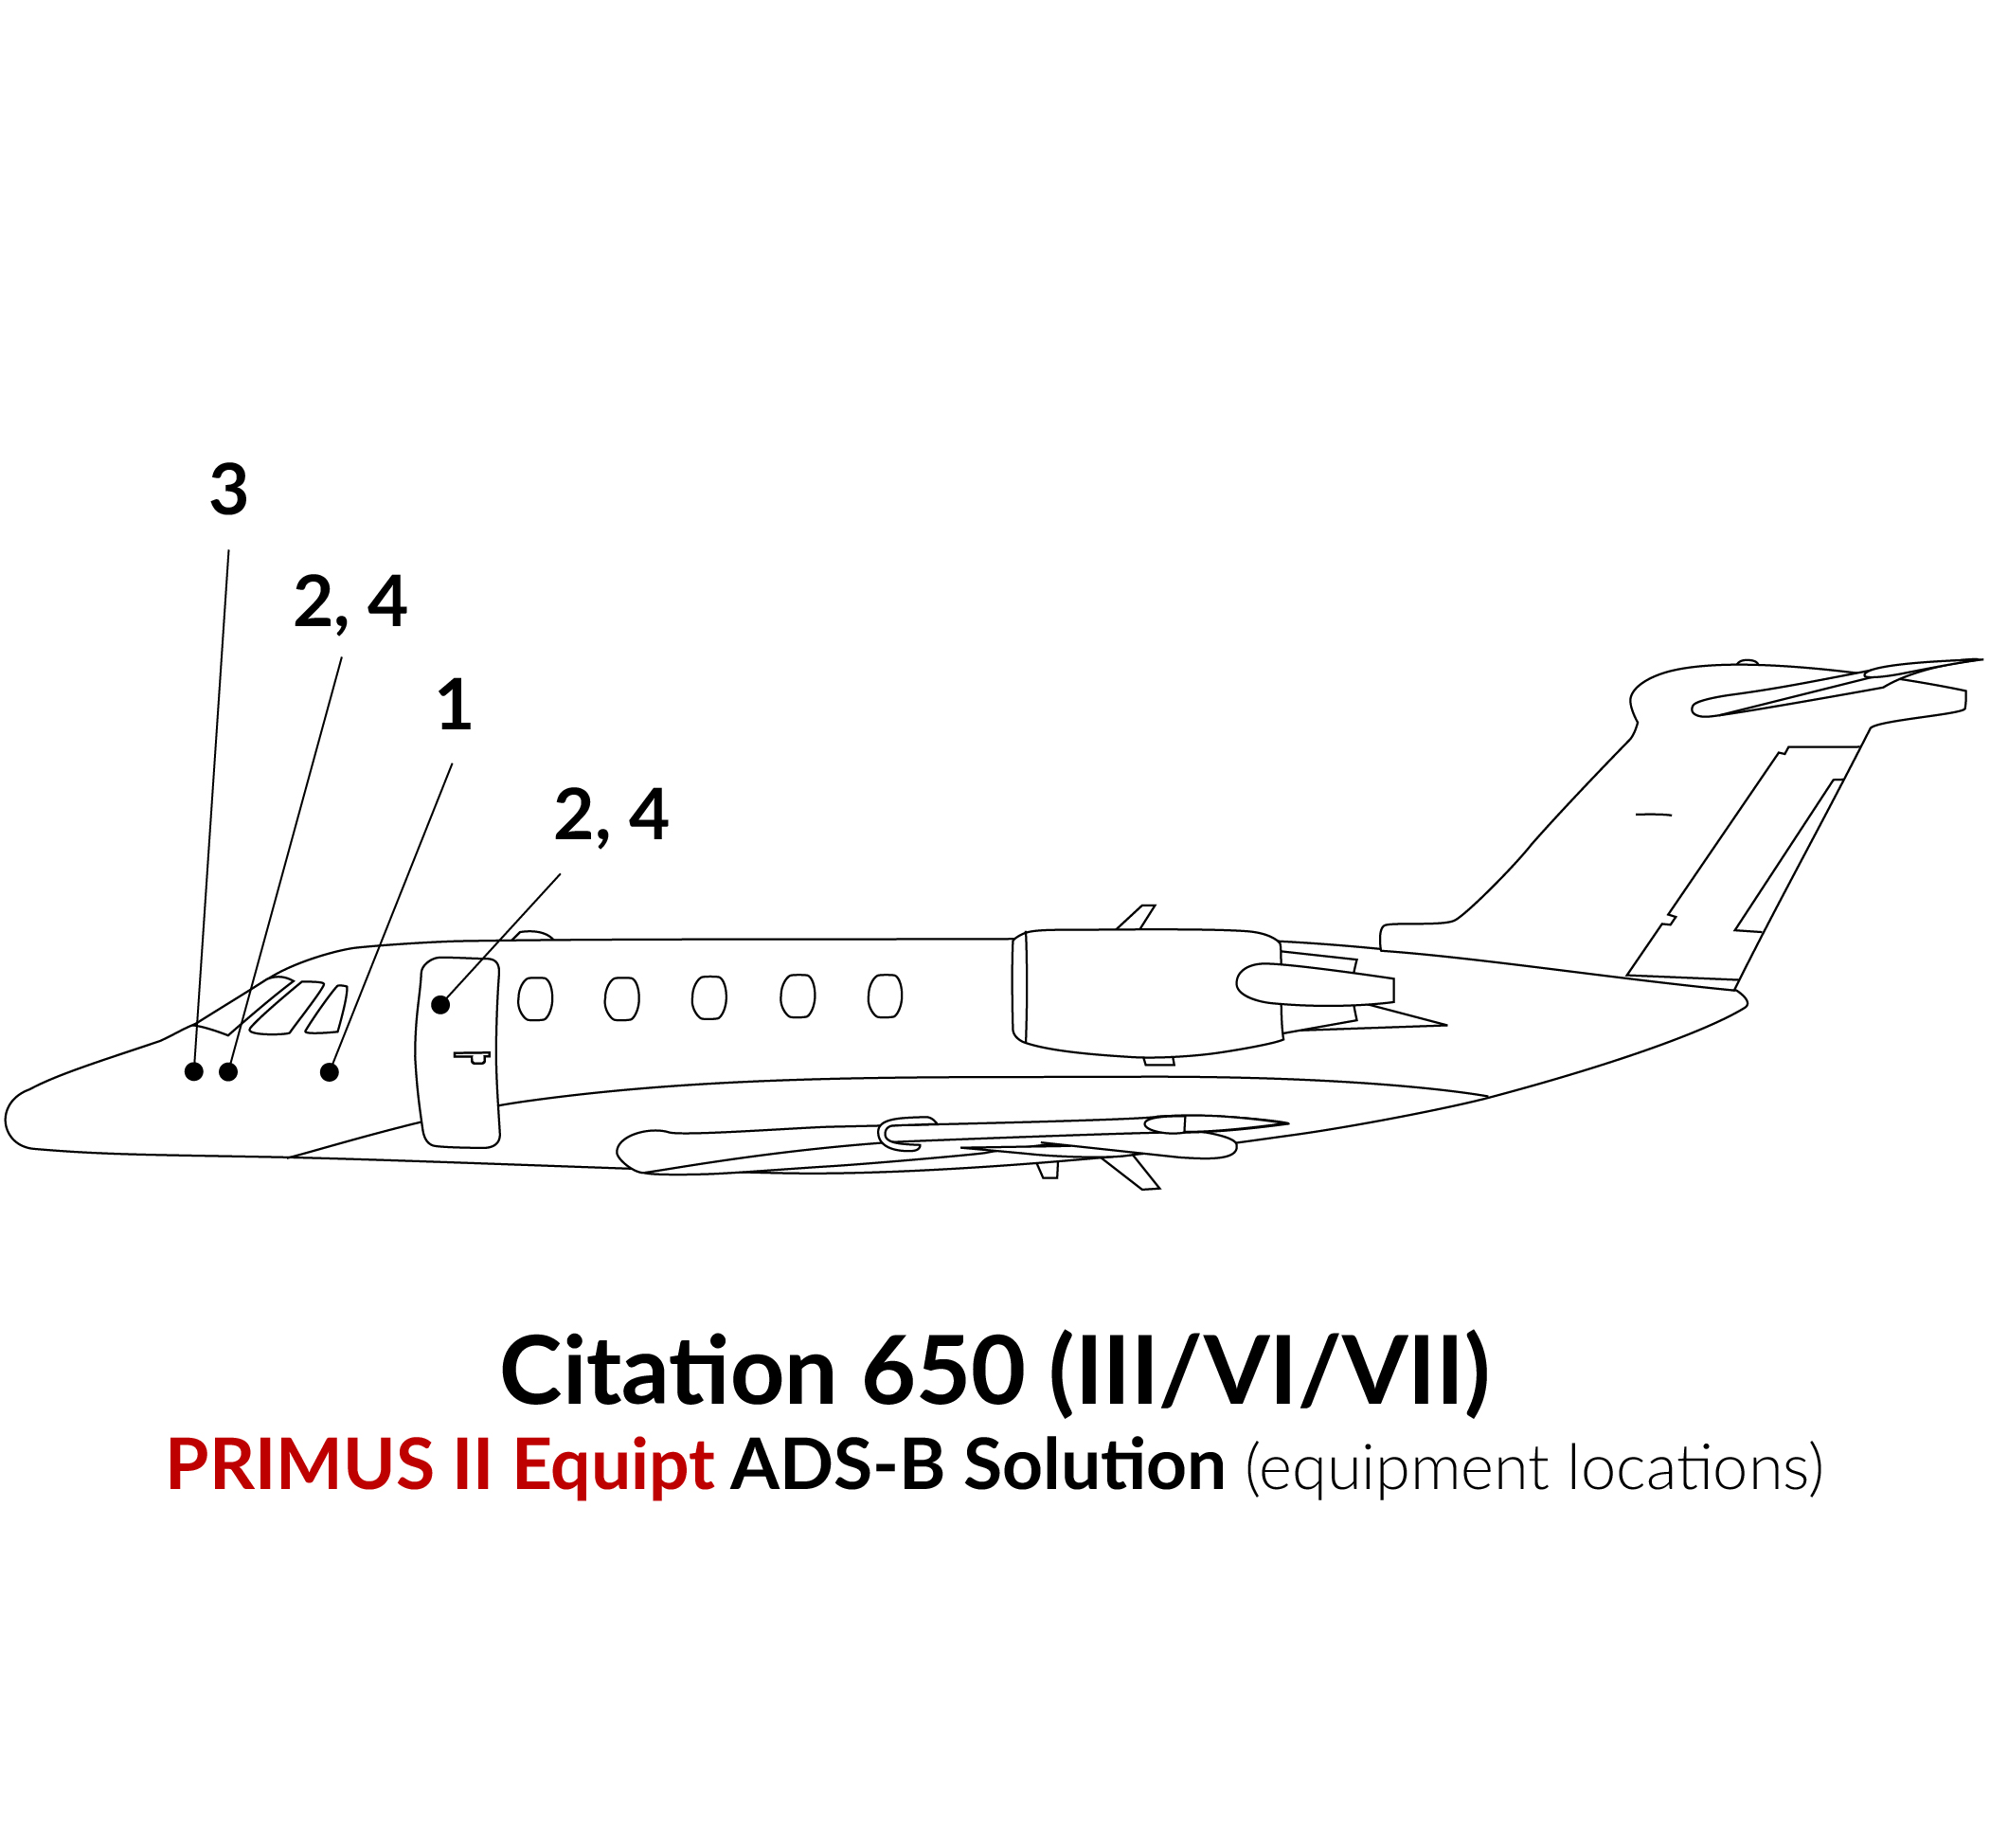 Citation 650_Honeywell Primus II.jpg